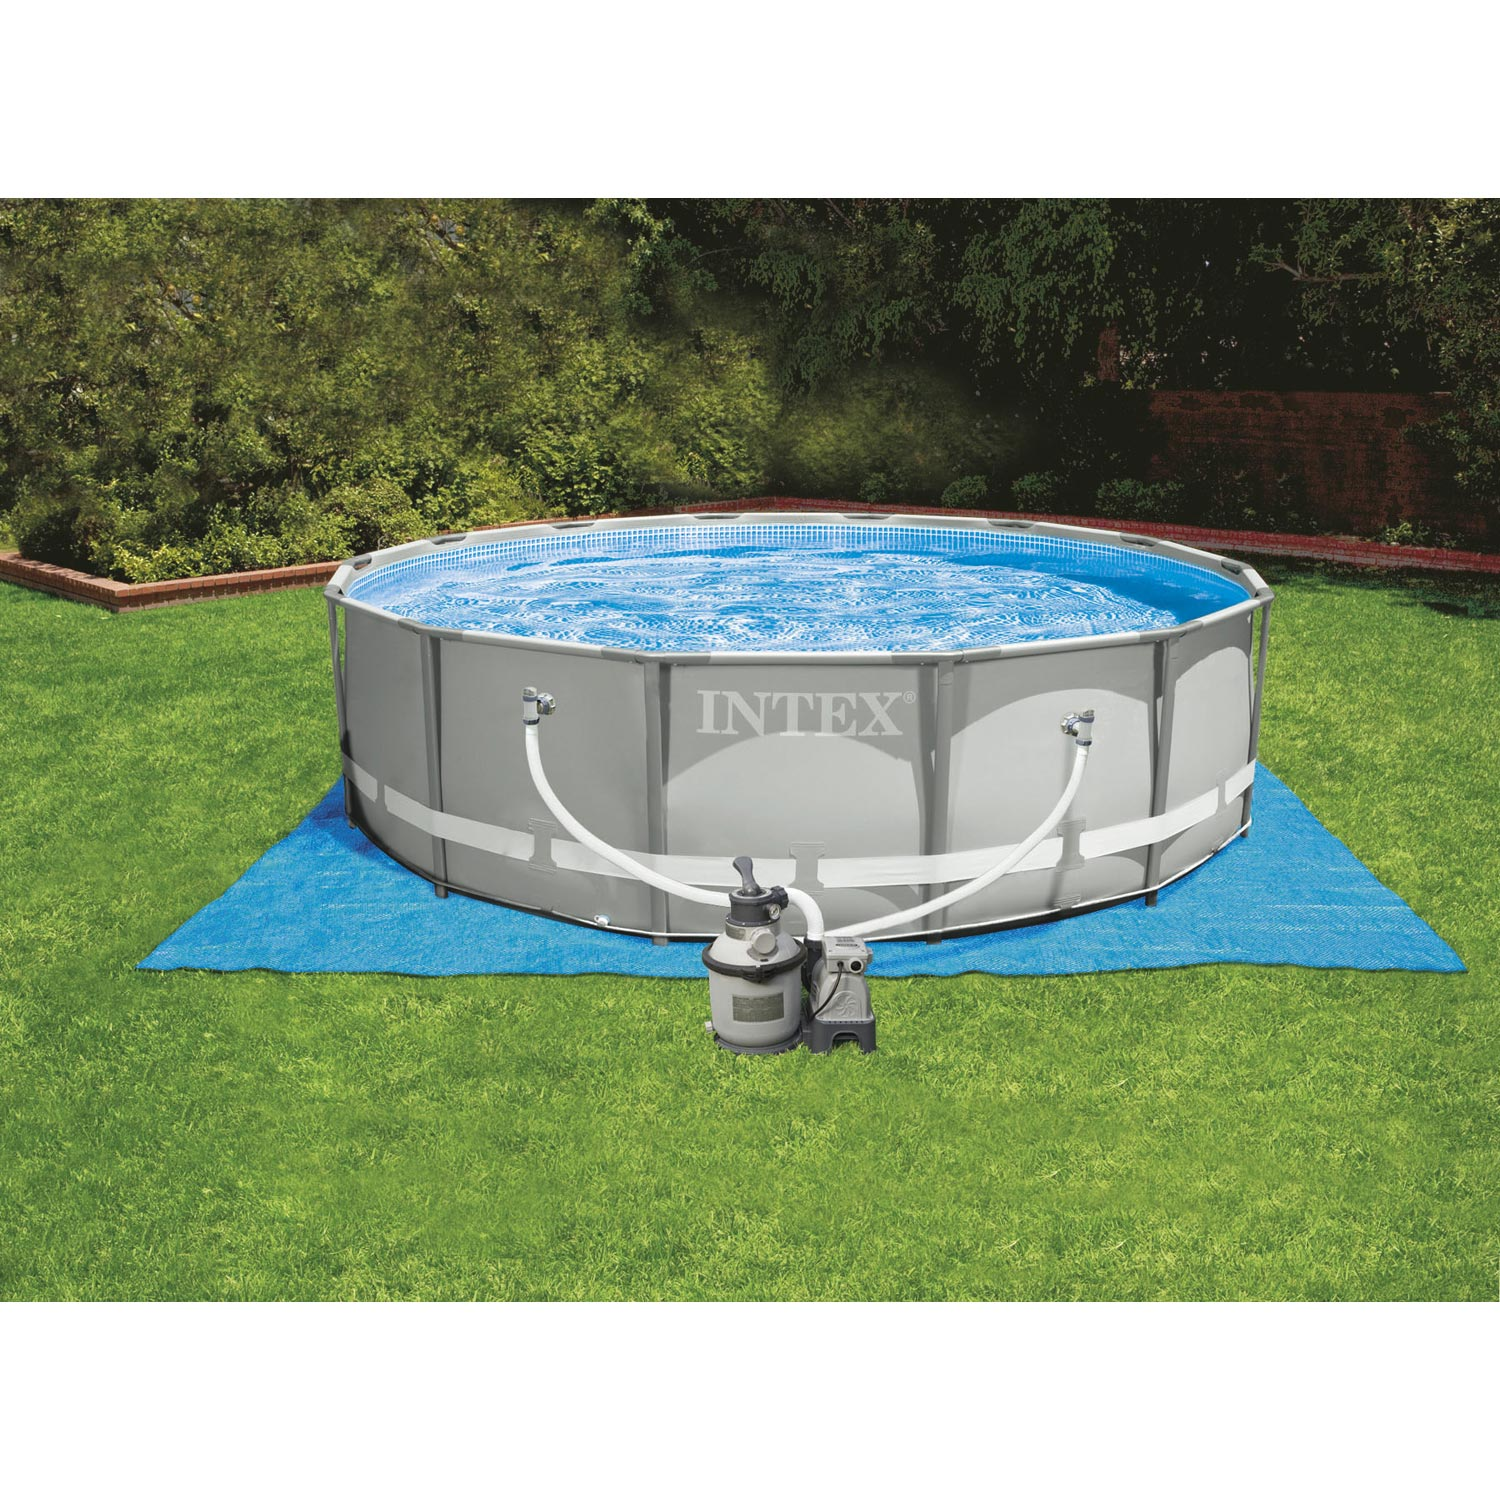 Piscine hors sol autoportante tubulaire ultraframe intex for Piscine hors sol rigide